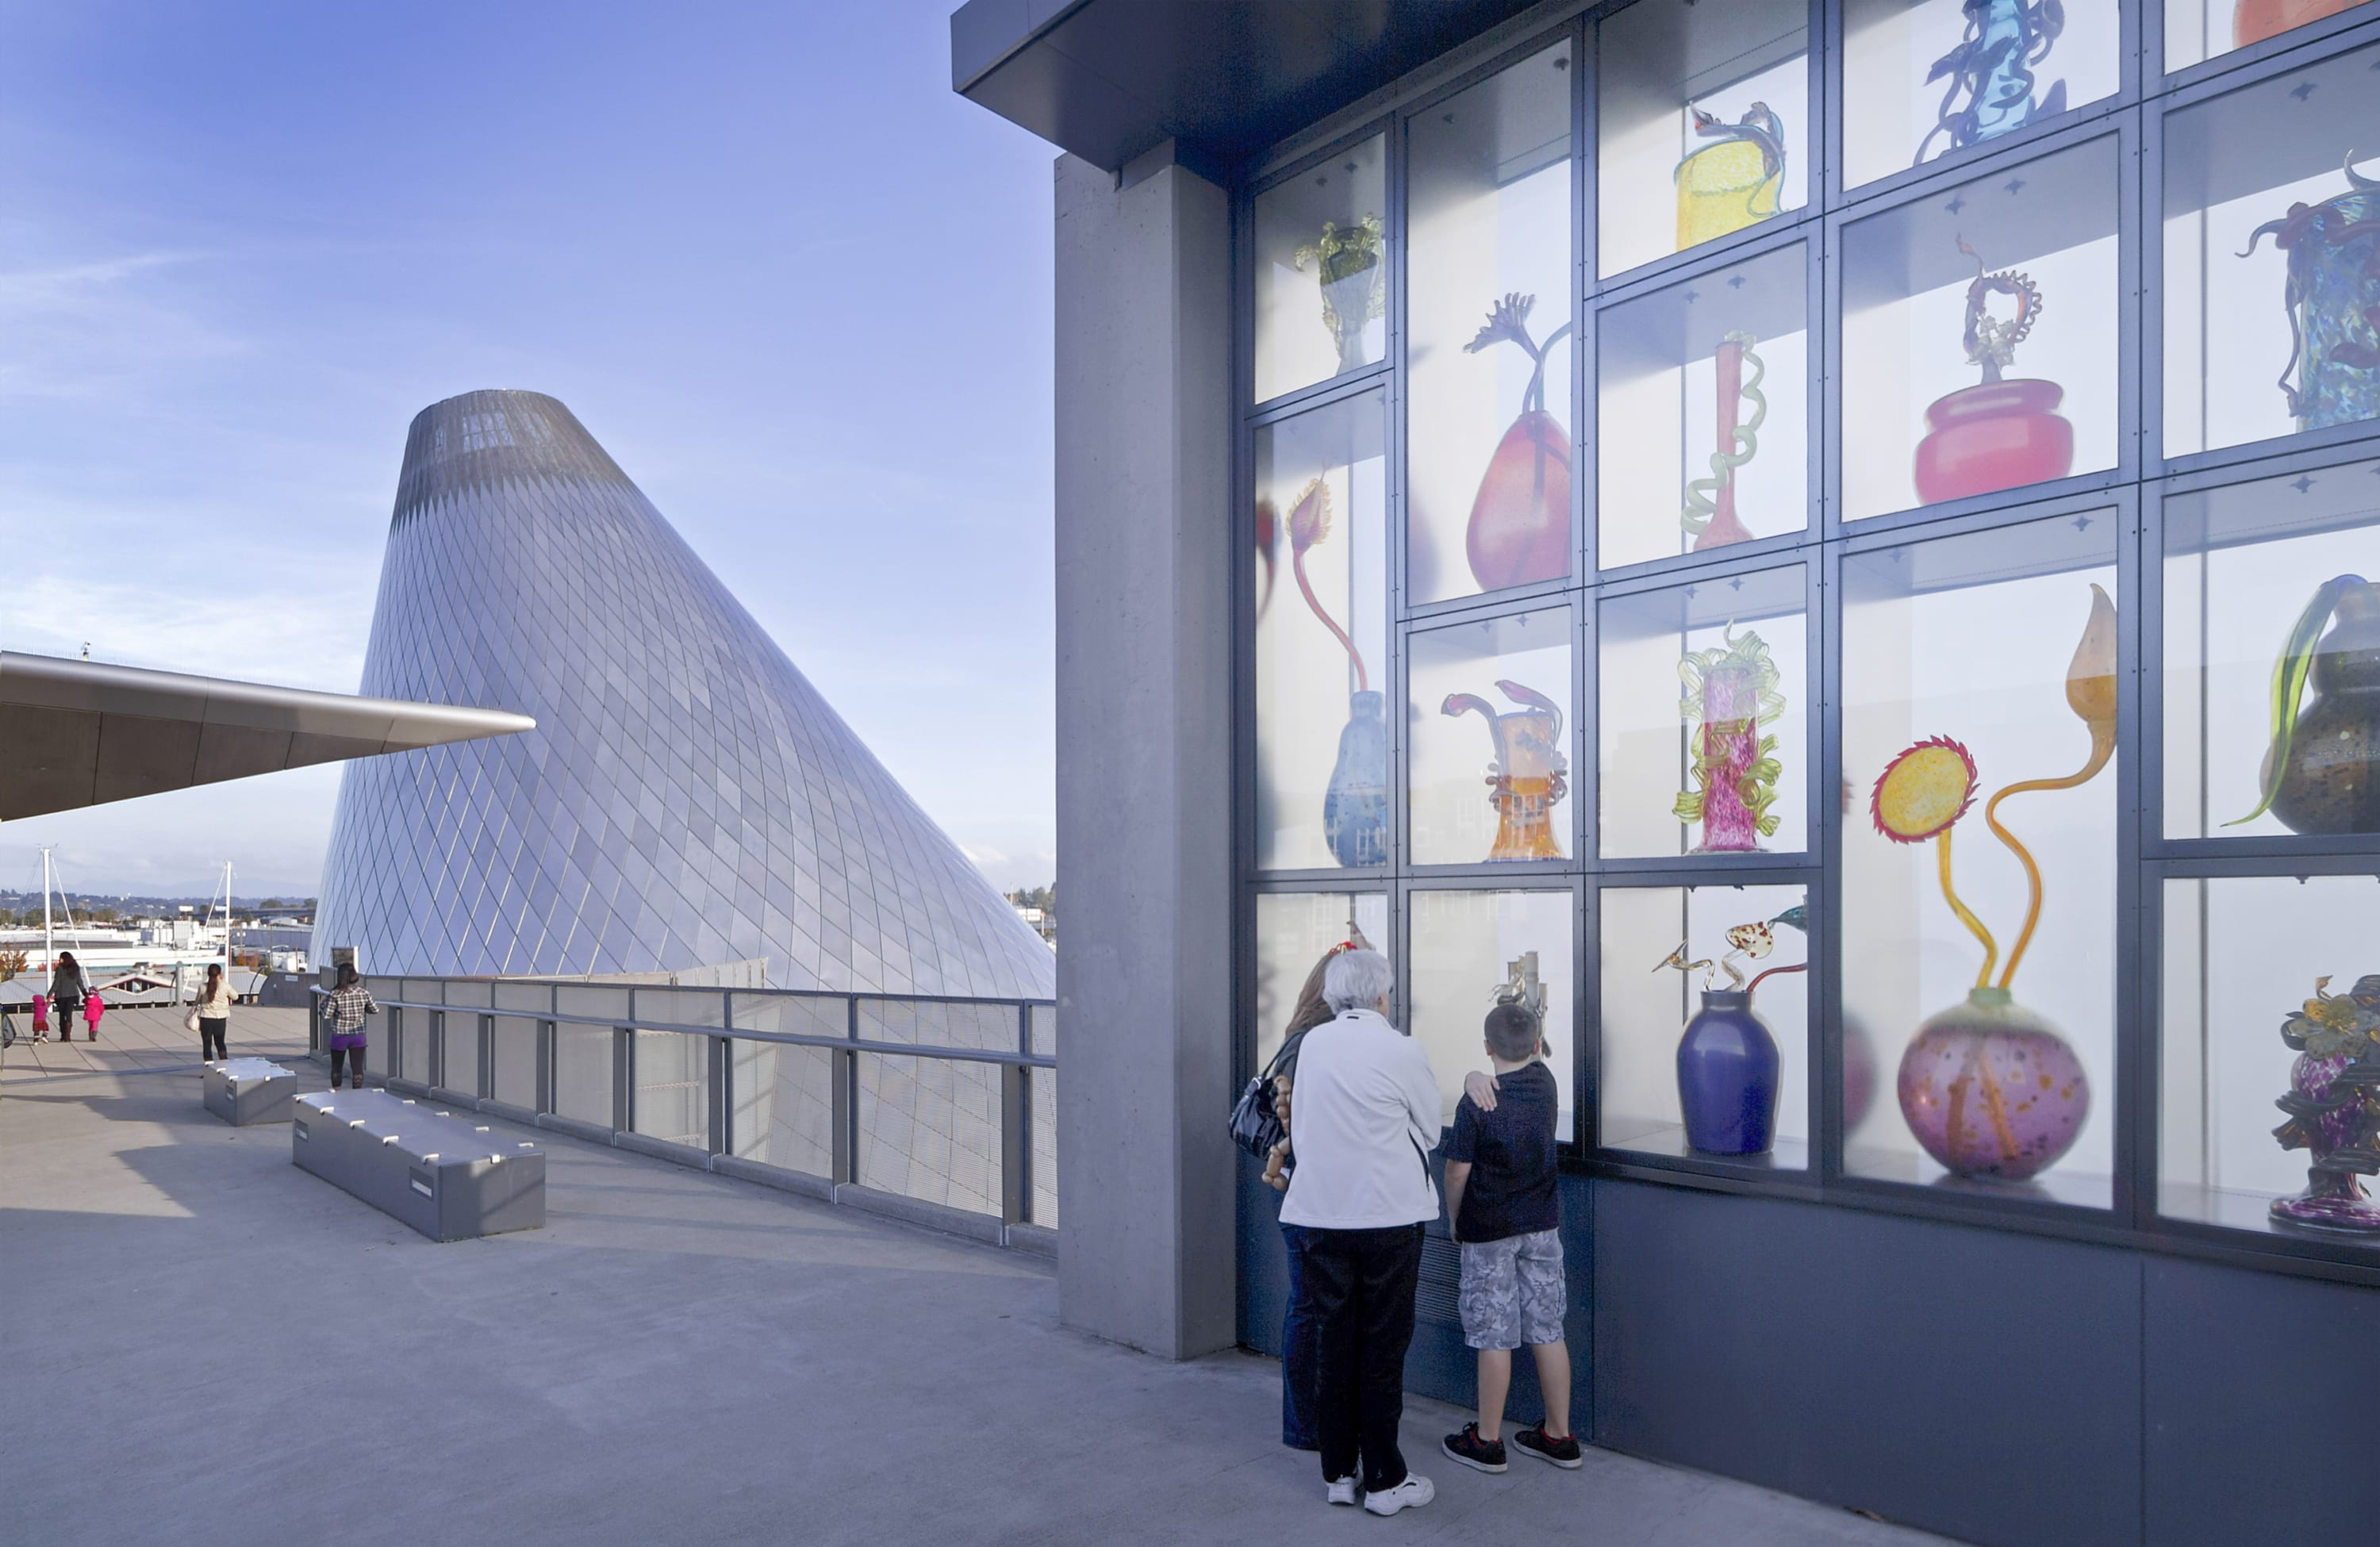 Venetian Wall for the Chihuly Bridge of Glass, with Museum of Glass in the background